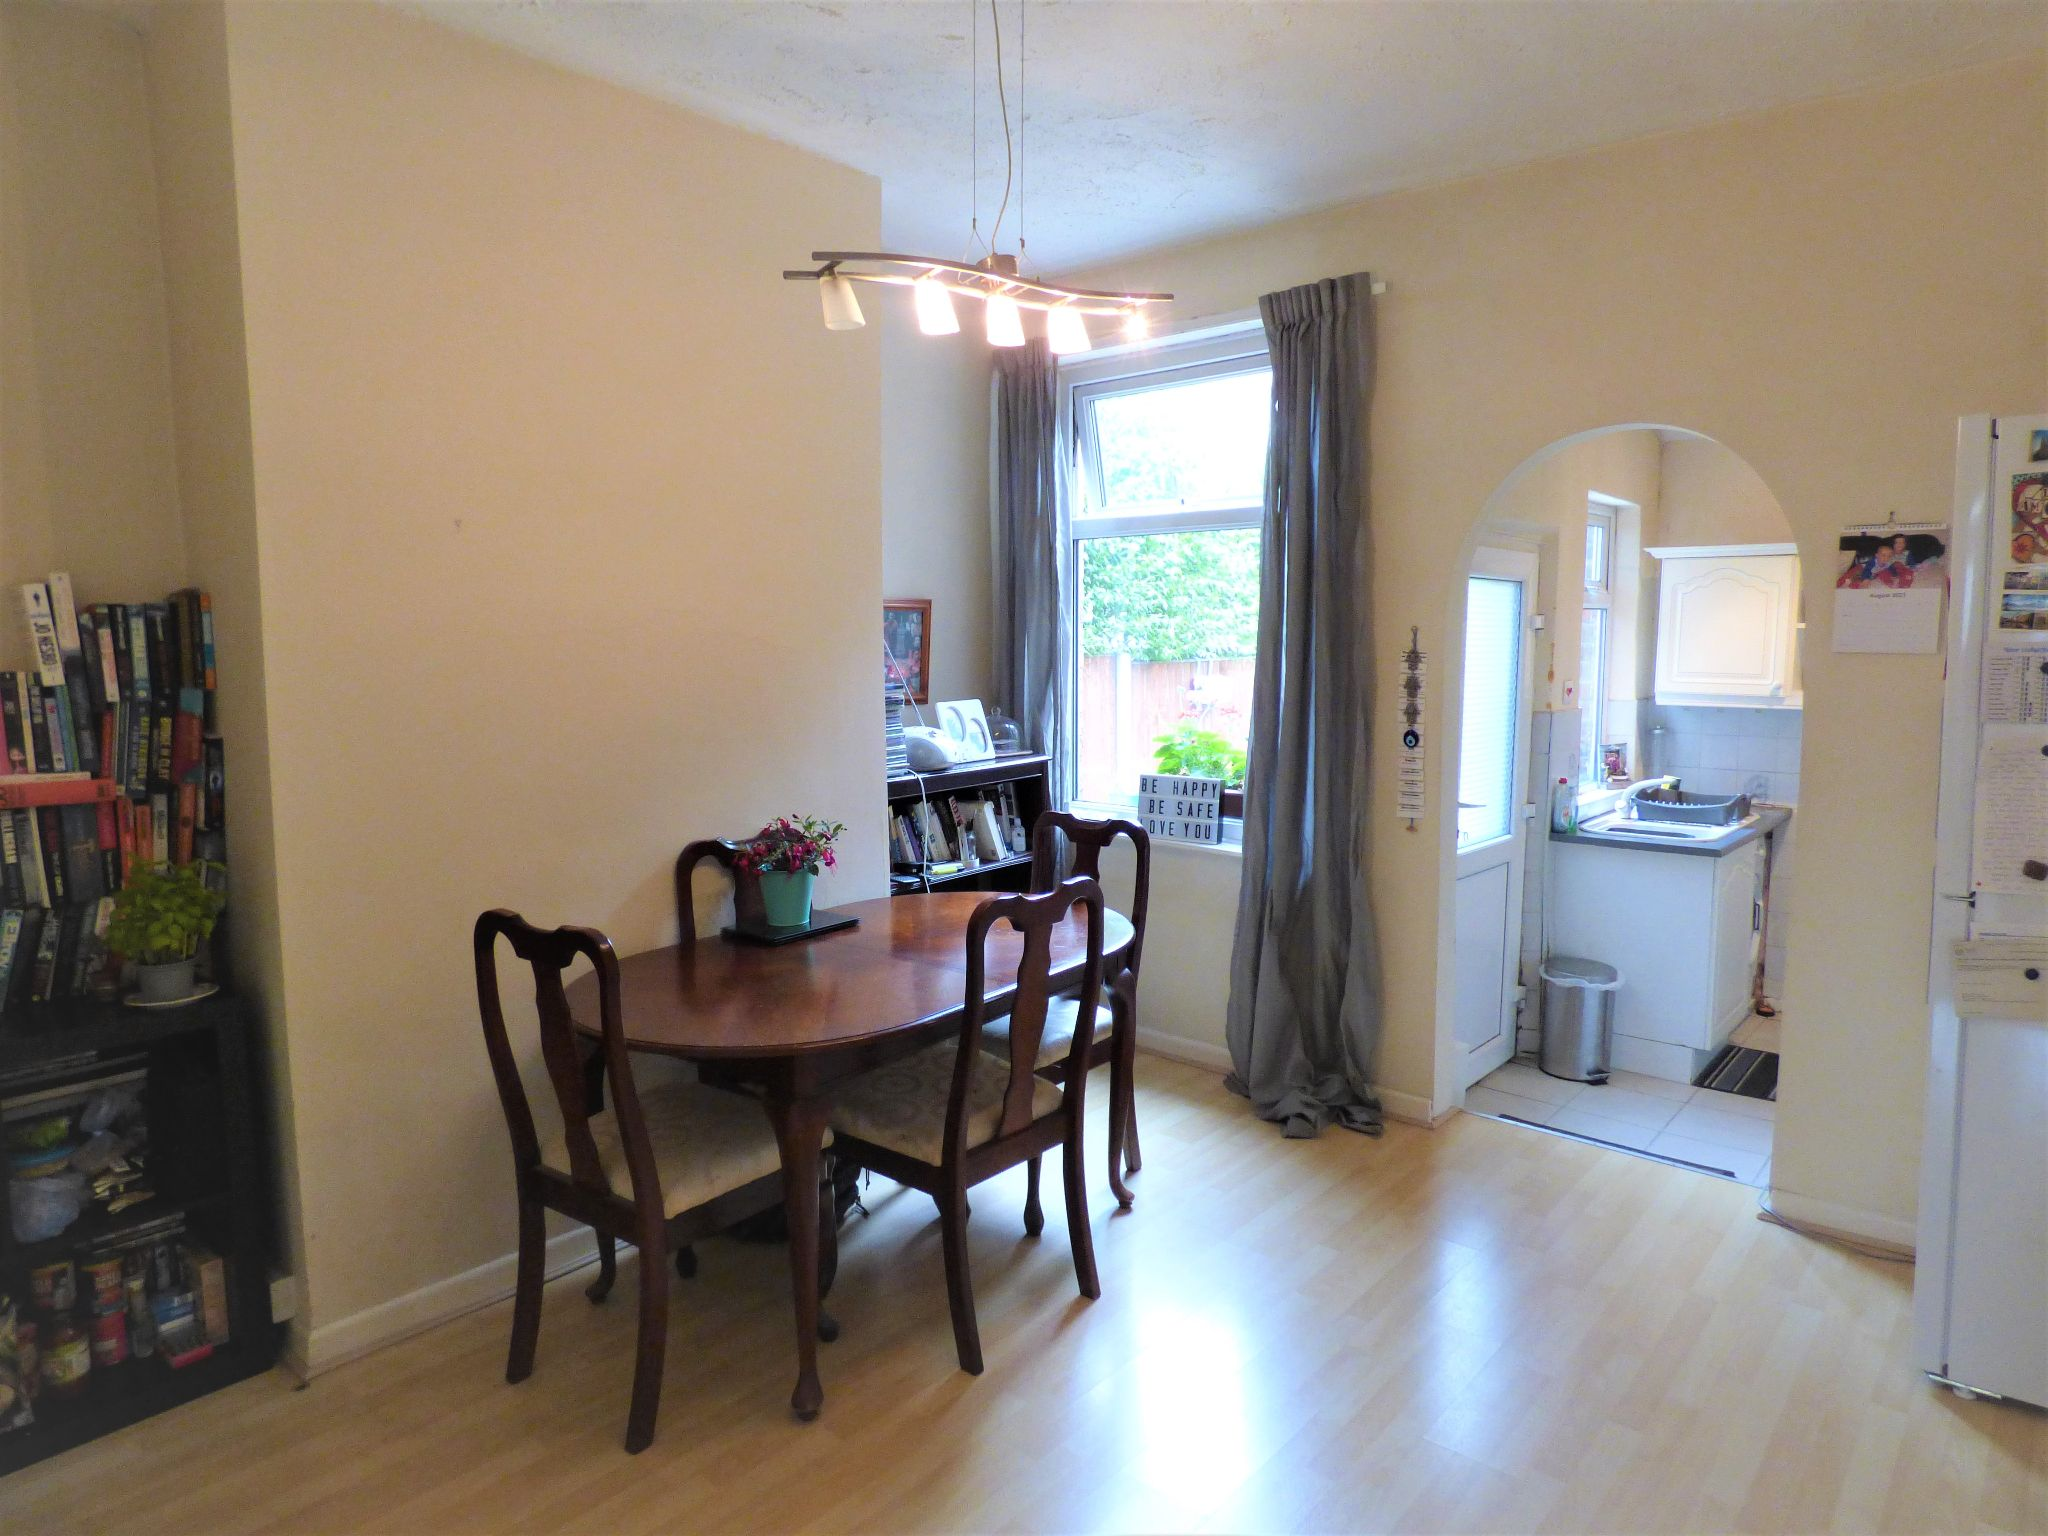 2 Bedroom Semi-detached House For Sale - Dining Room